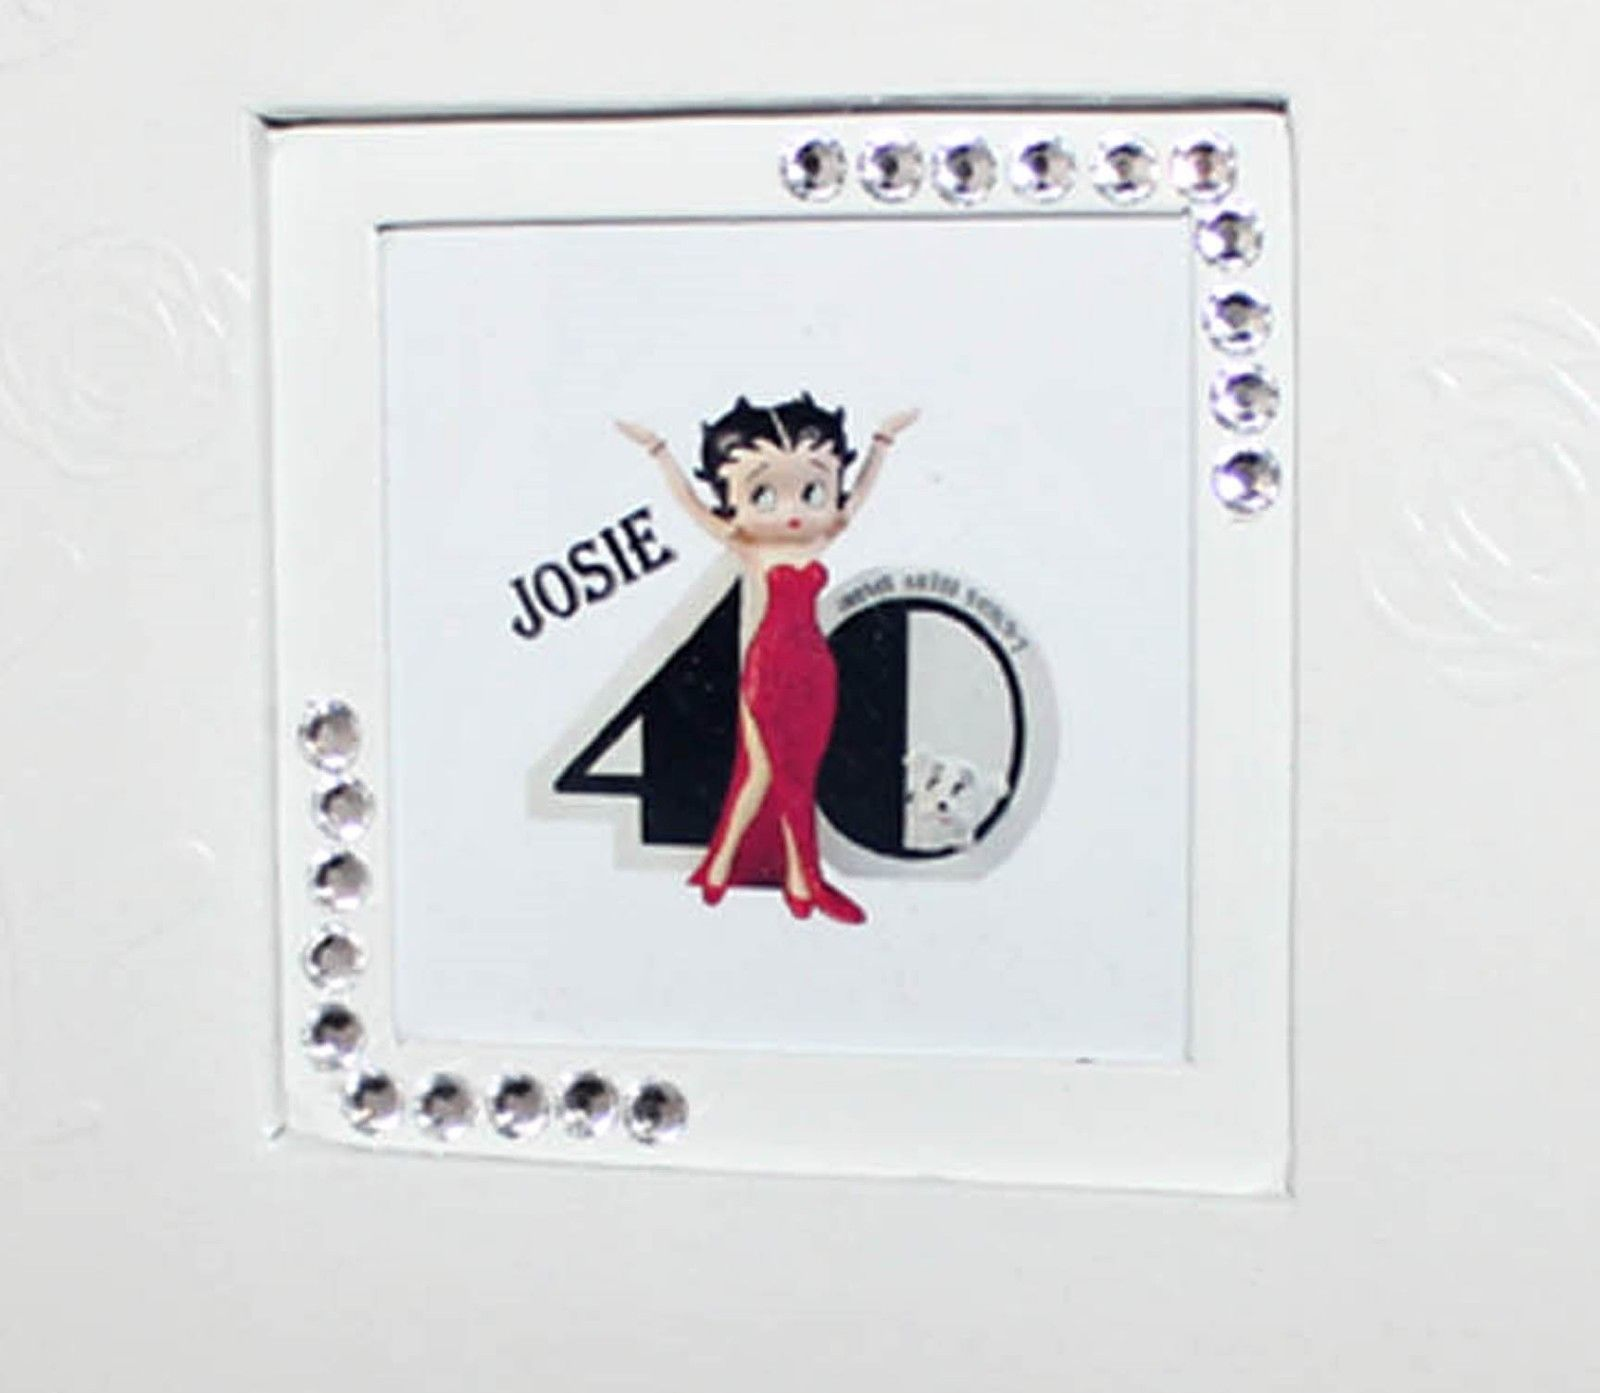 Betty Boop 40th Birthday Leather Photo Album Personalised gift  #8